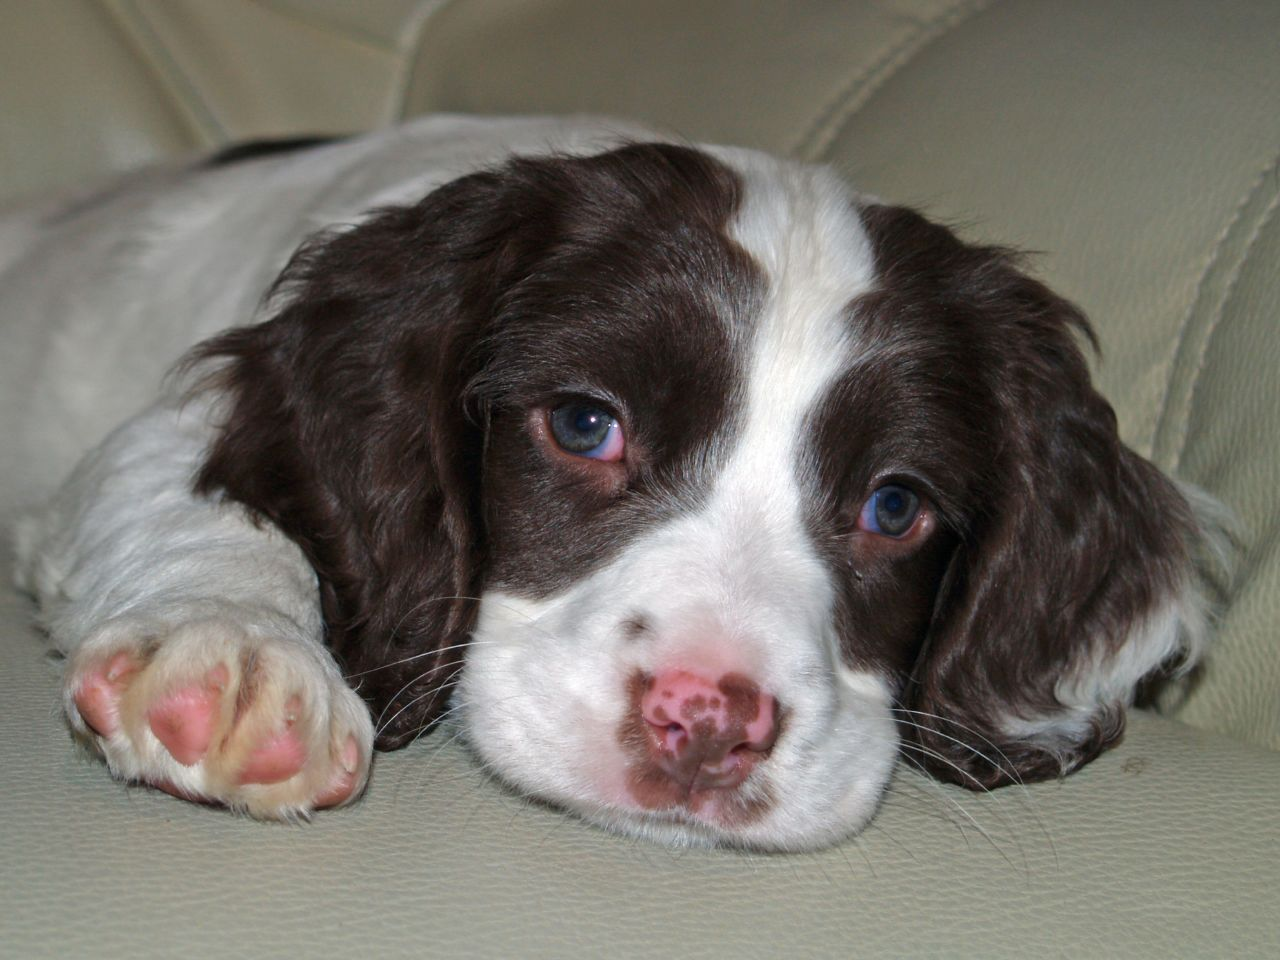 can't wait to get my sweet english springer spaniel this